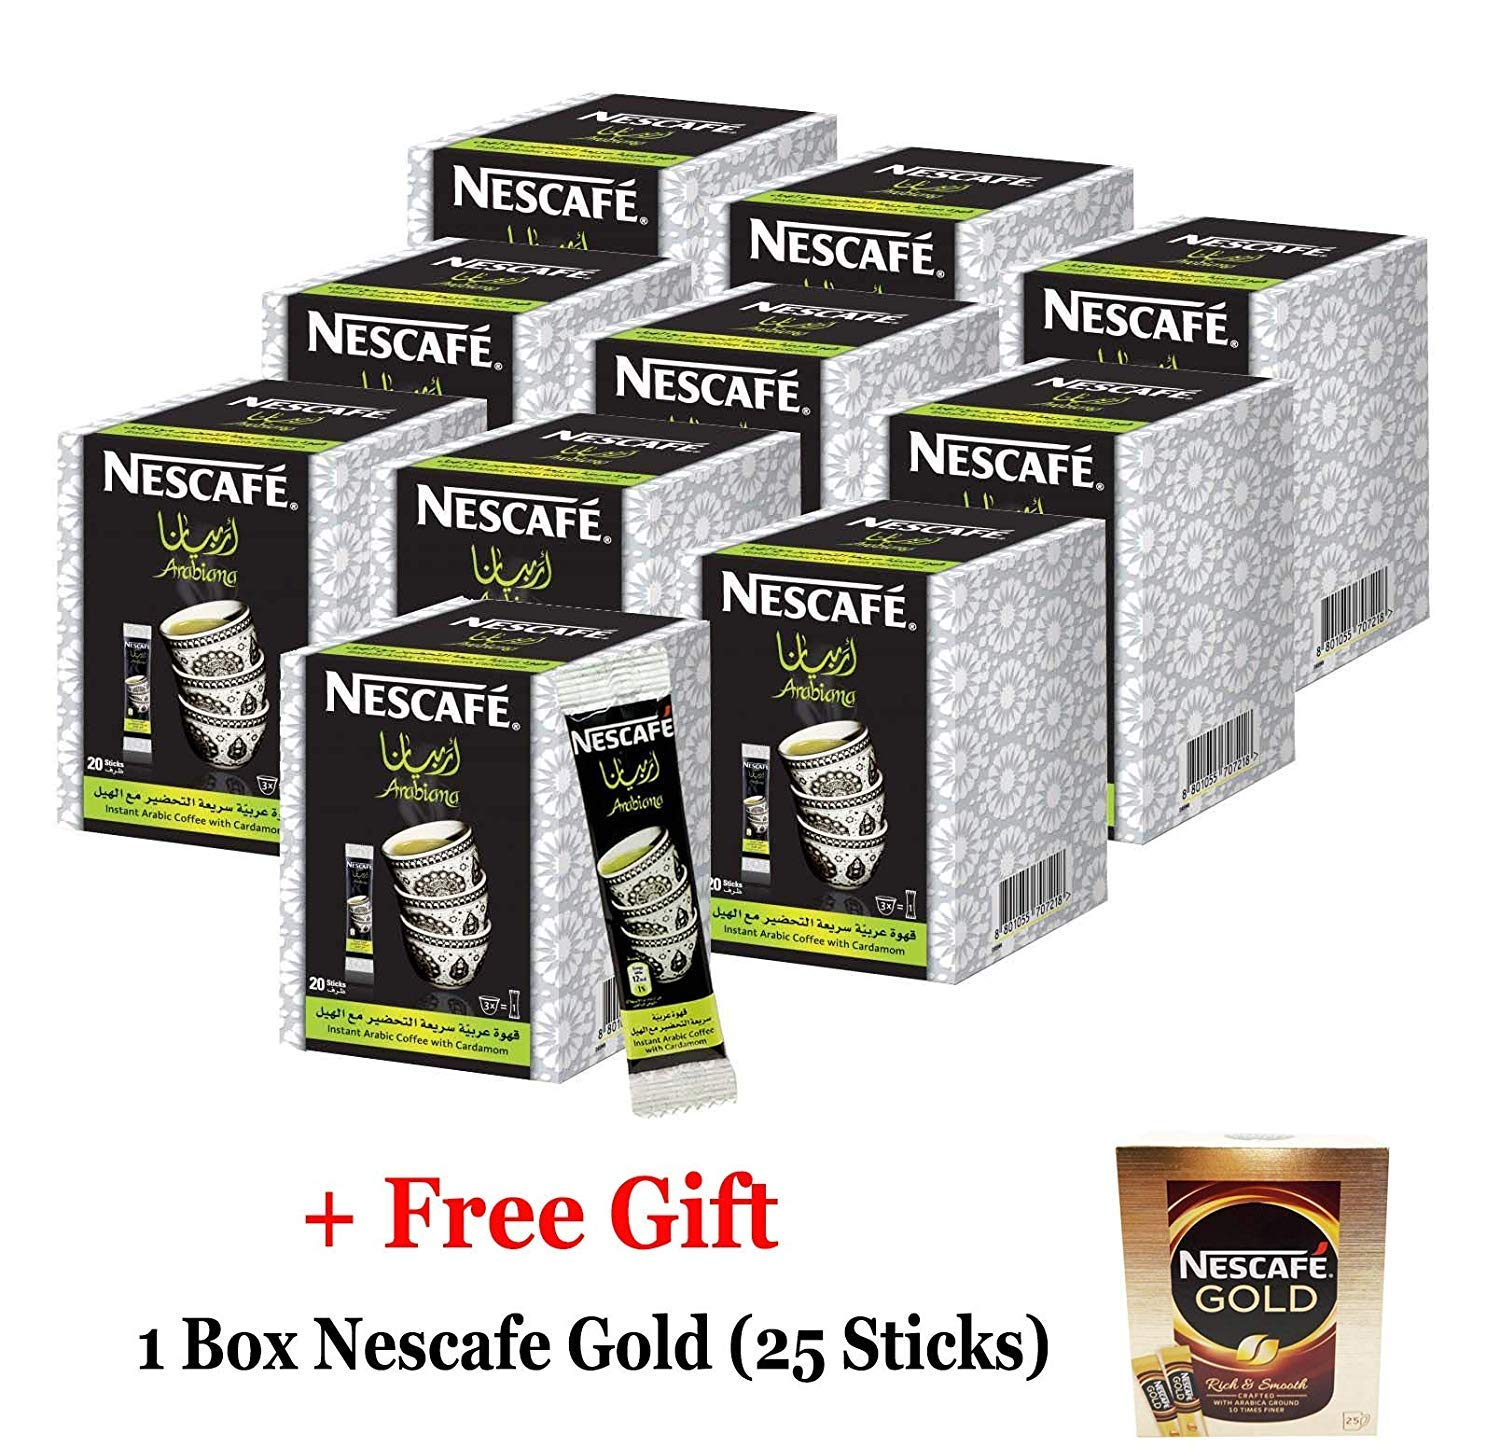 Instant Nescafe Arabiana Arabic Coffee Mix With Cardamom Flavor (12 Boxes (240 Sticks))